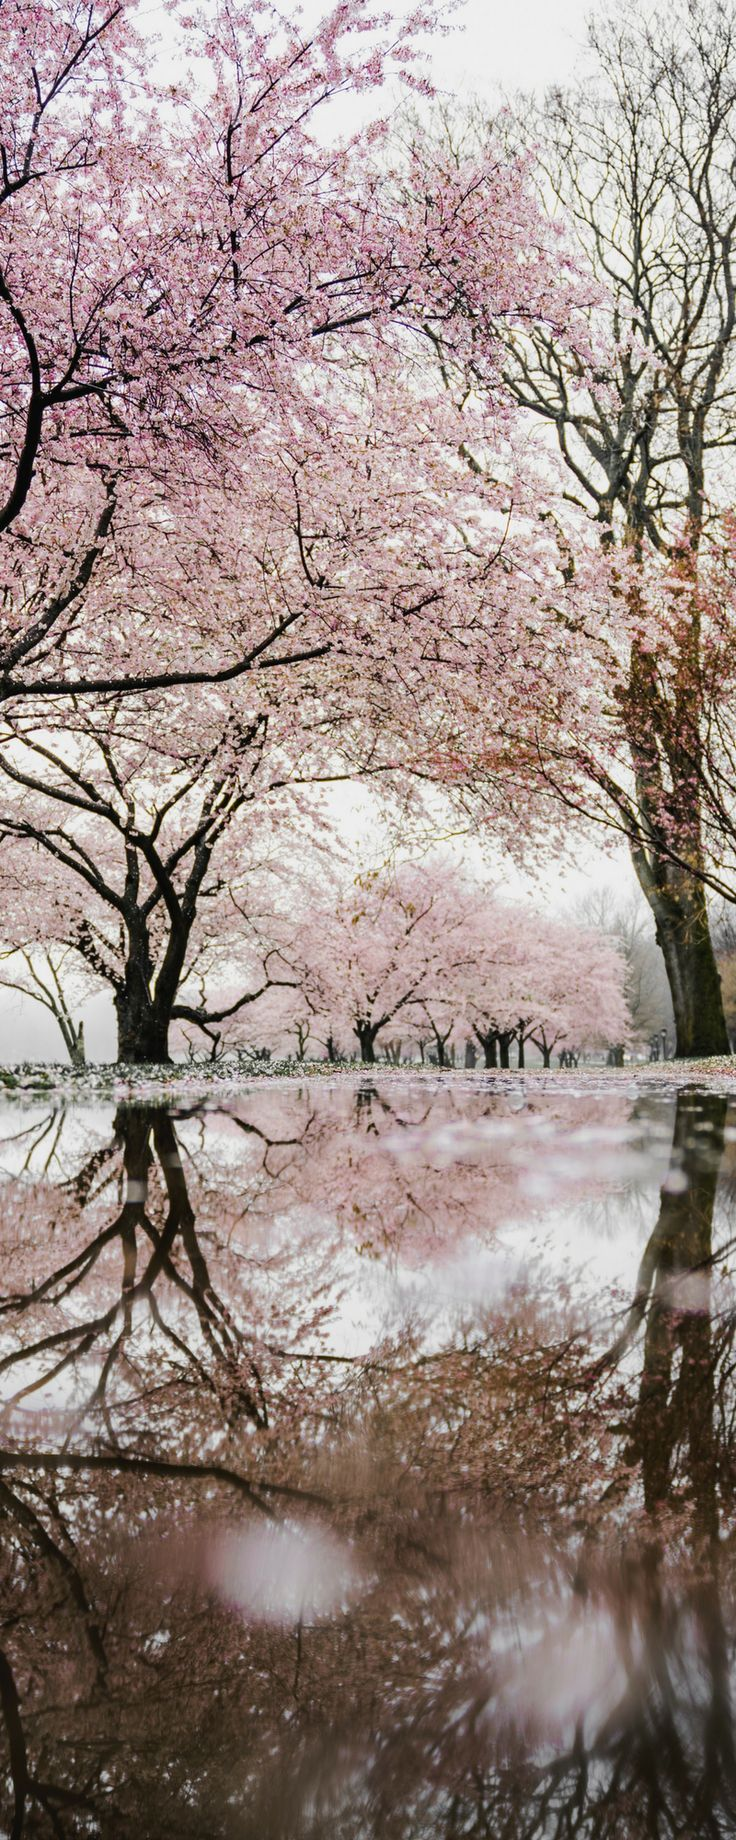 11 Best Things To Do In Washington Dc Usatravel Cherry Blossoms In Dc 11 Of T Blosso Landscape Photography Nature Nature Pictures Scenery